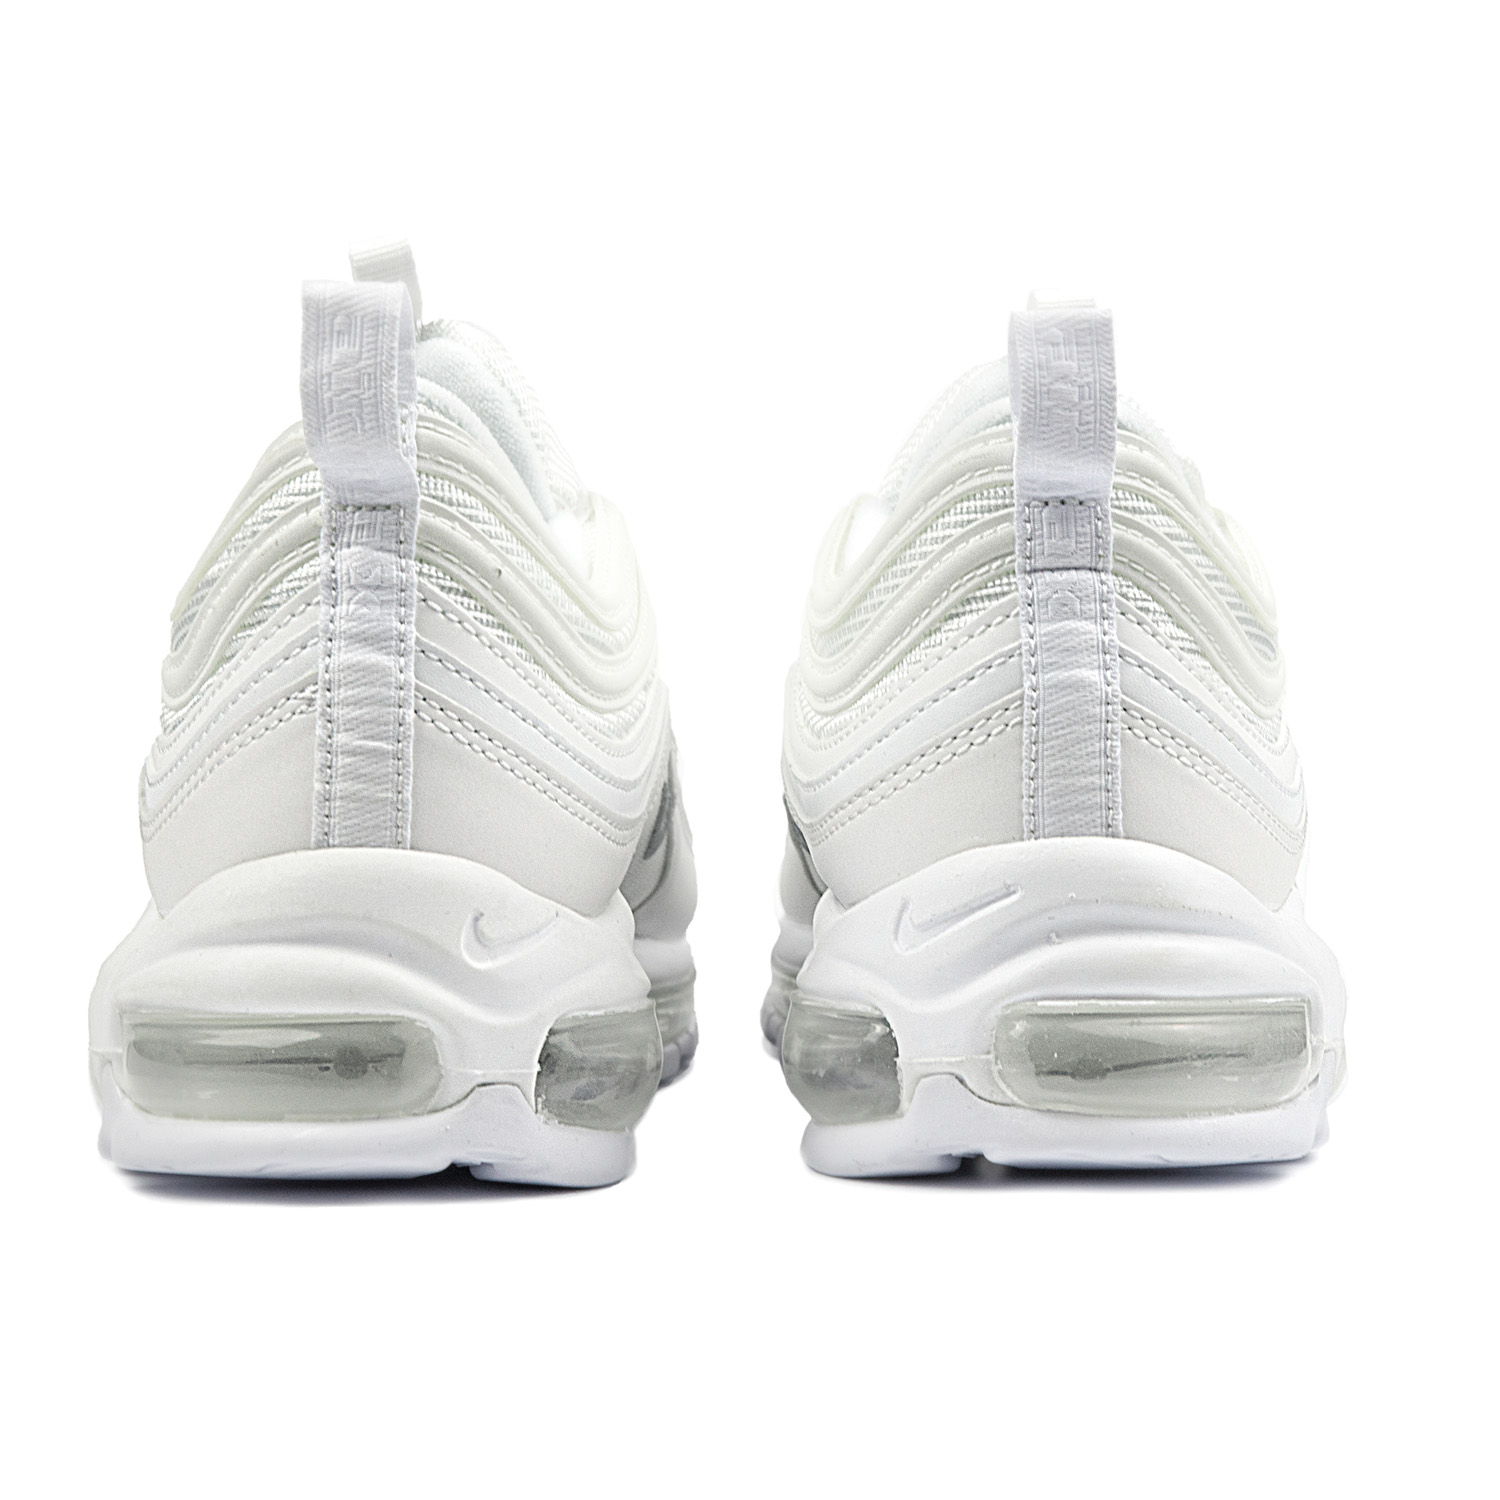 Nike Air Max 97 White Wolf Grey 921826 101 US Size 7